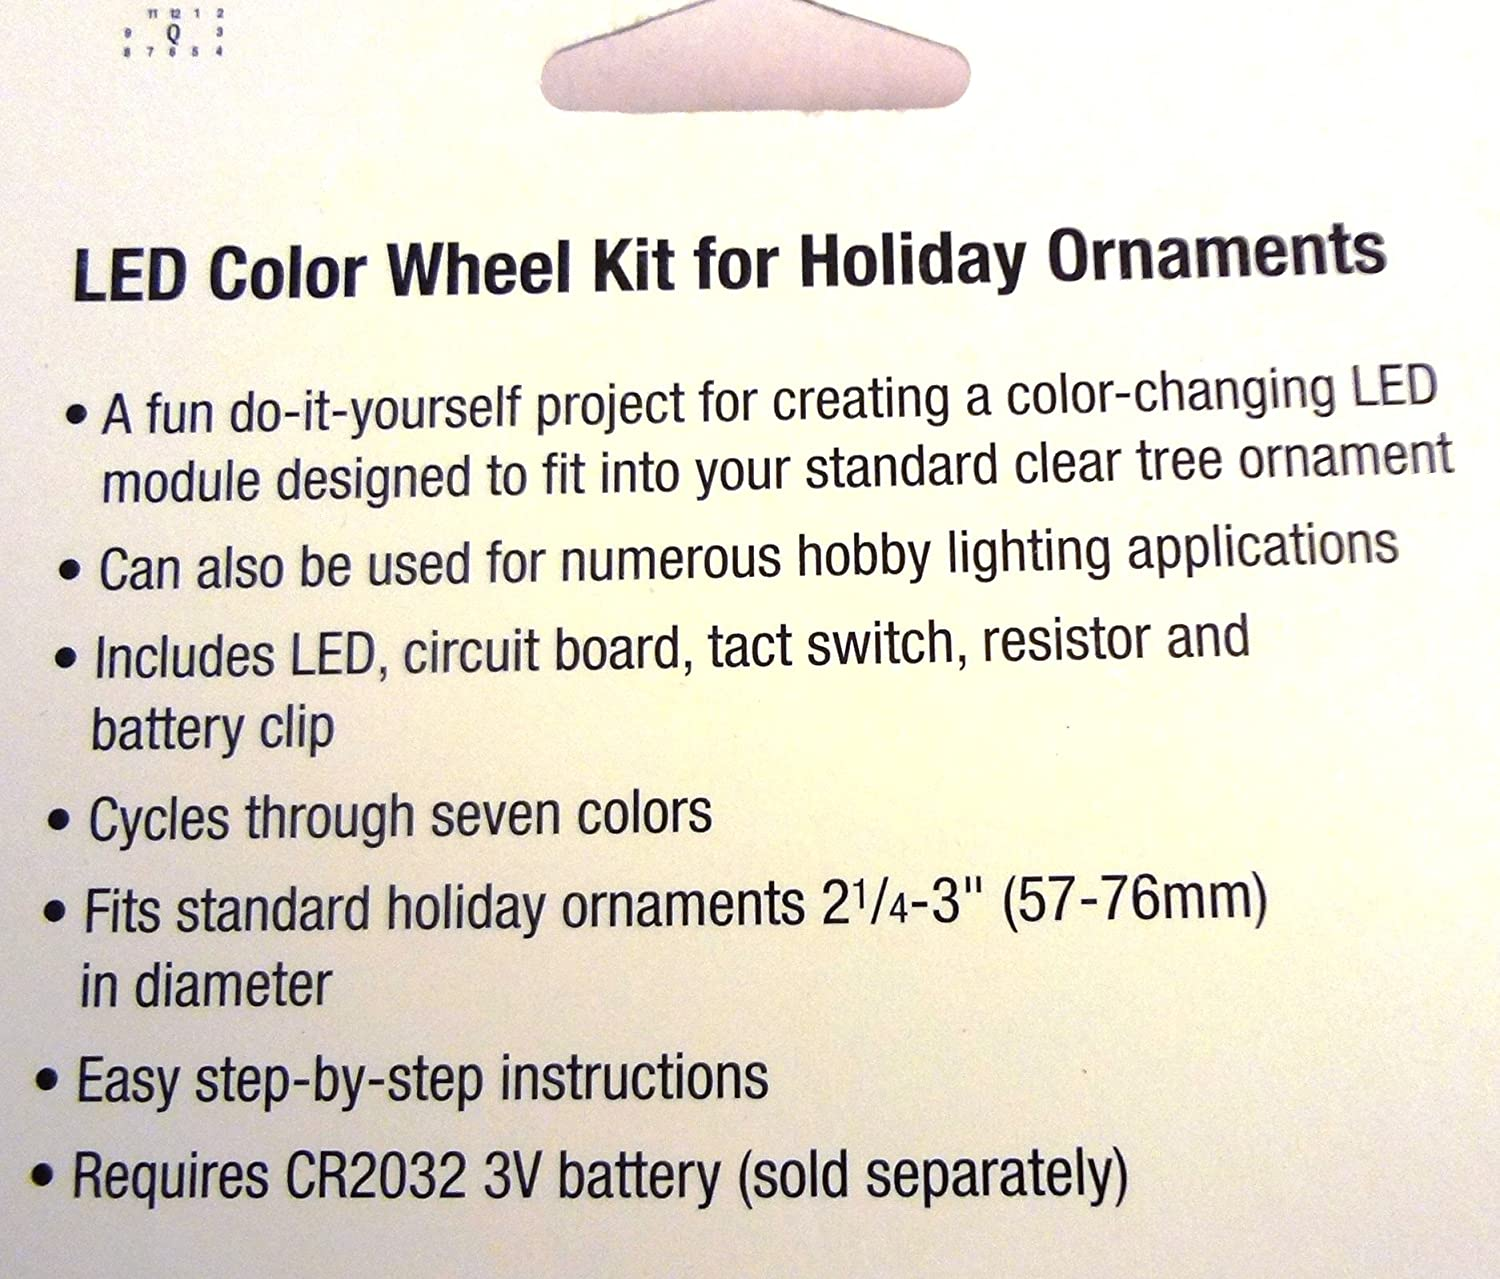 Led Color Wheel Kit For Holiday Ornaments Home Kitchen Step 3 Assemble The Changing Circuit